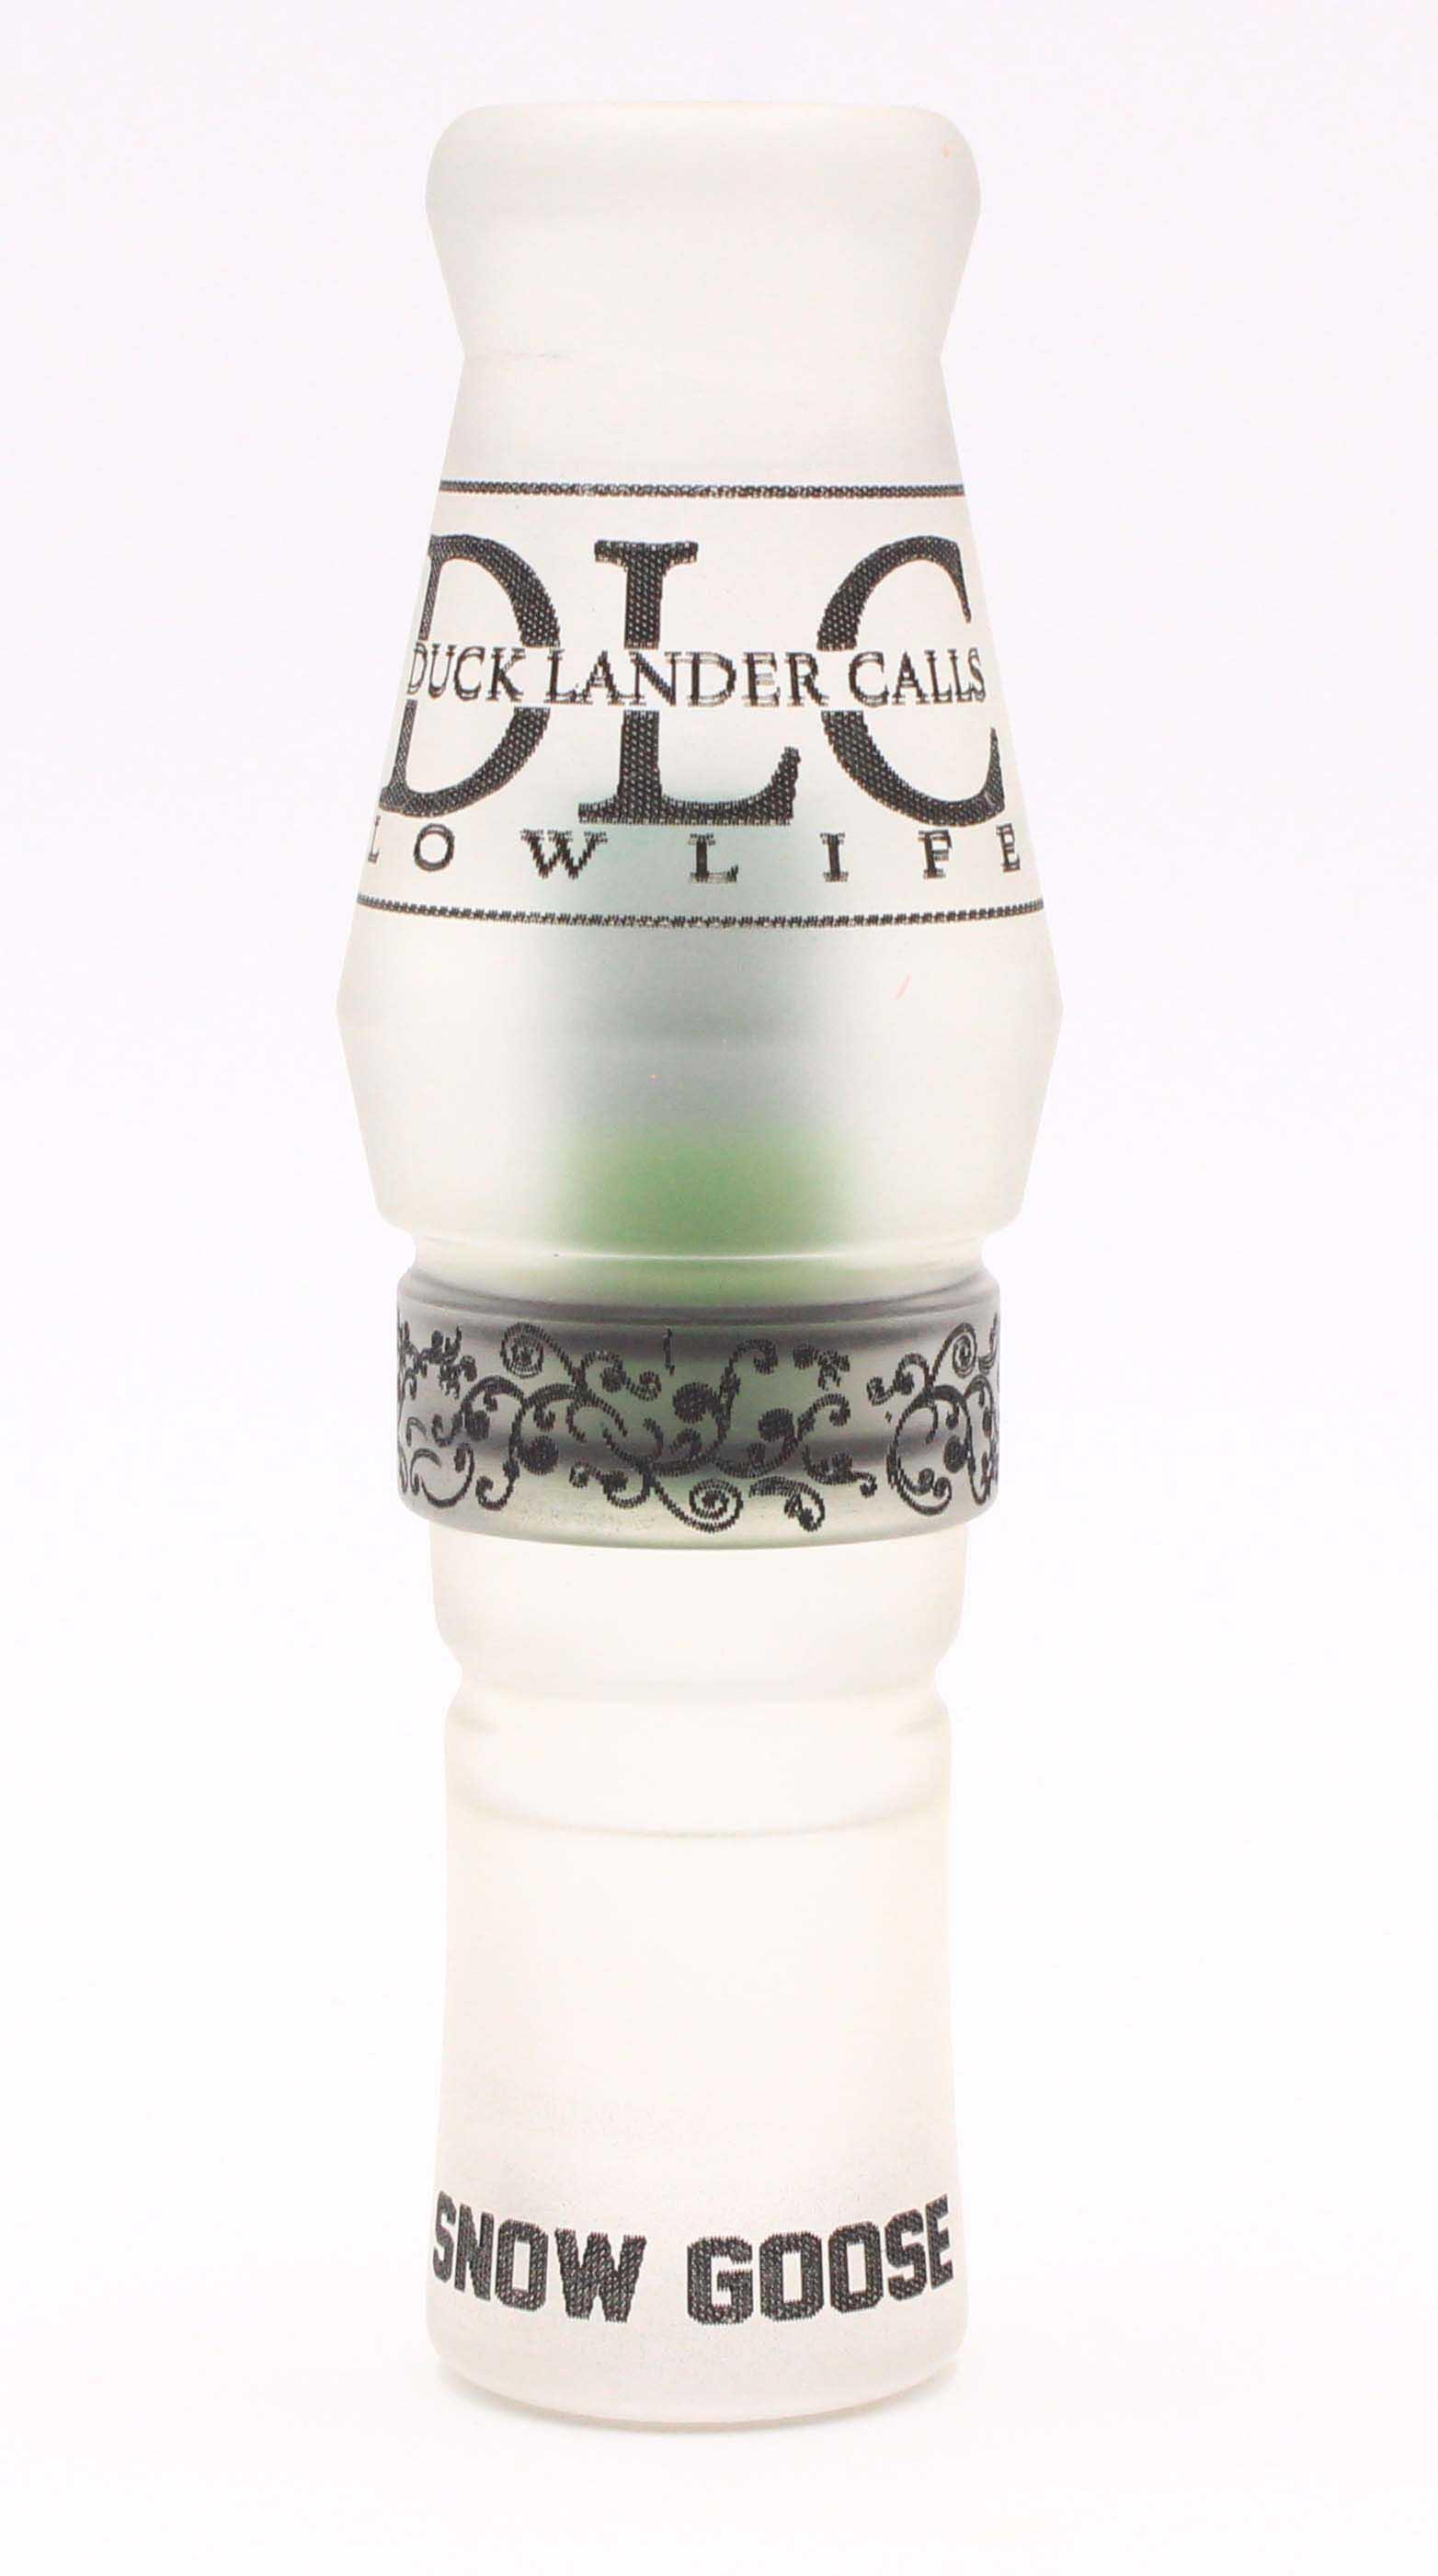 Ducklander Low Life Snow Goose Call